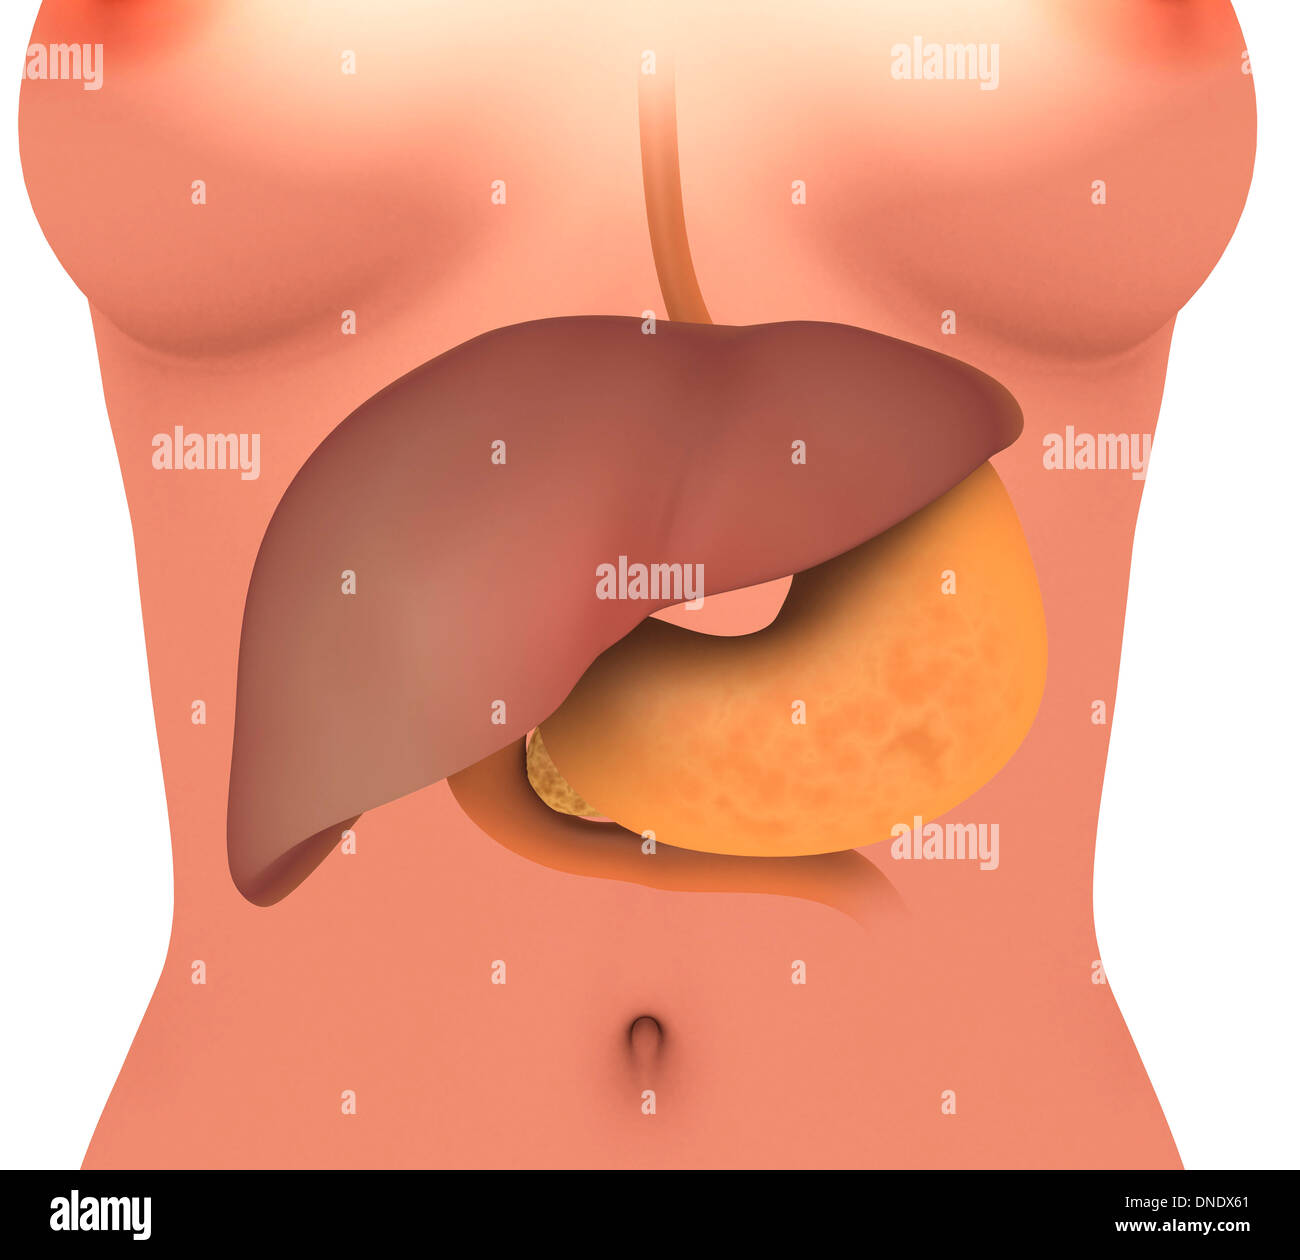 Conceptual Image Of Human Digestive System In Female Body Stock